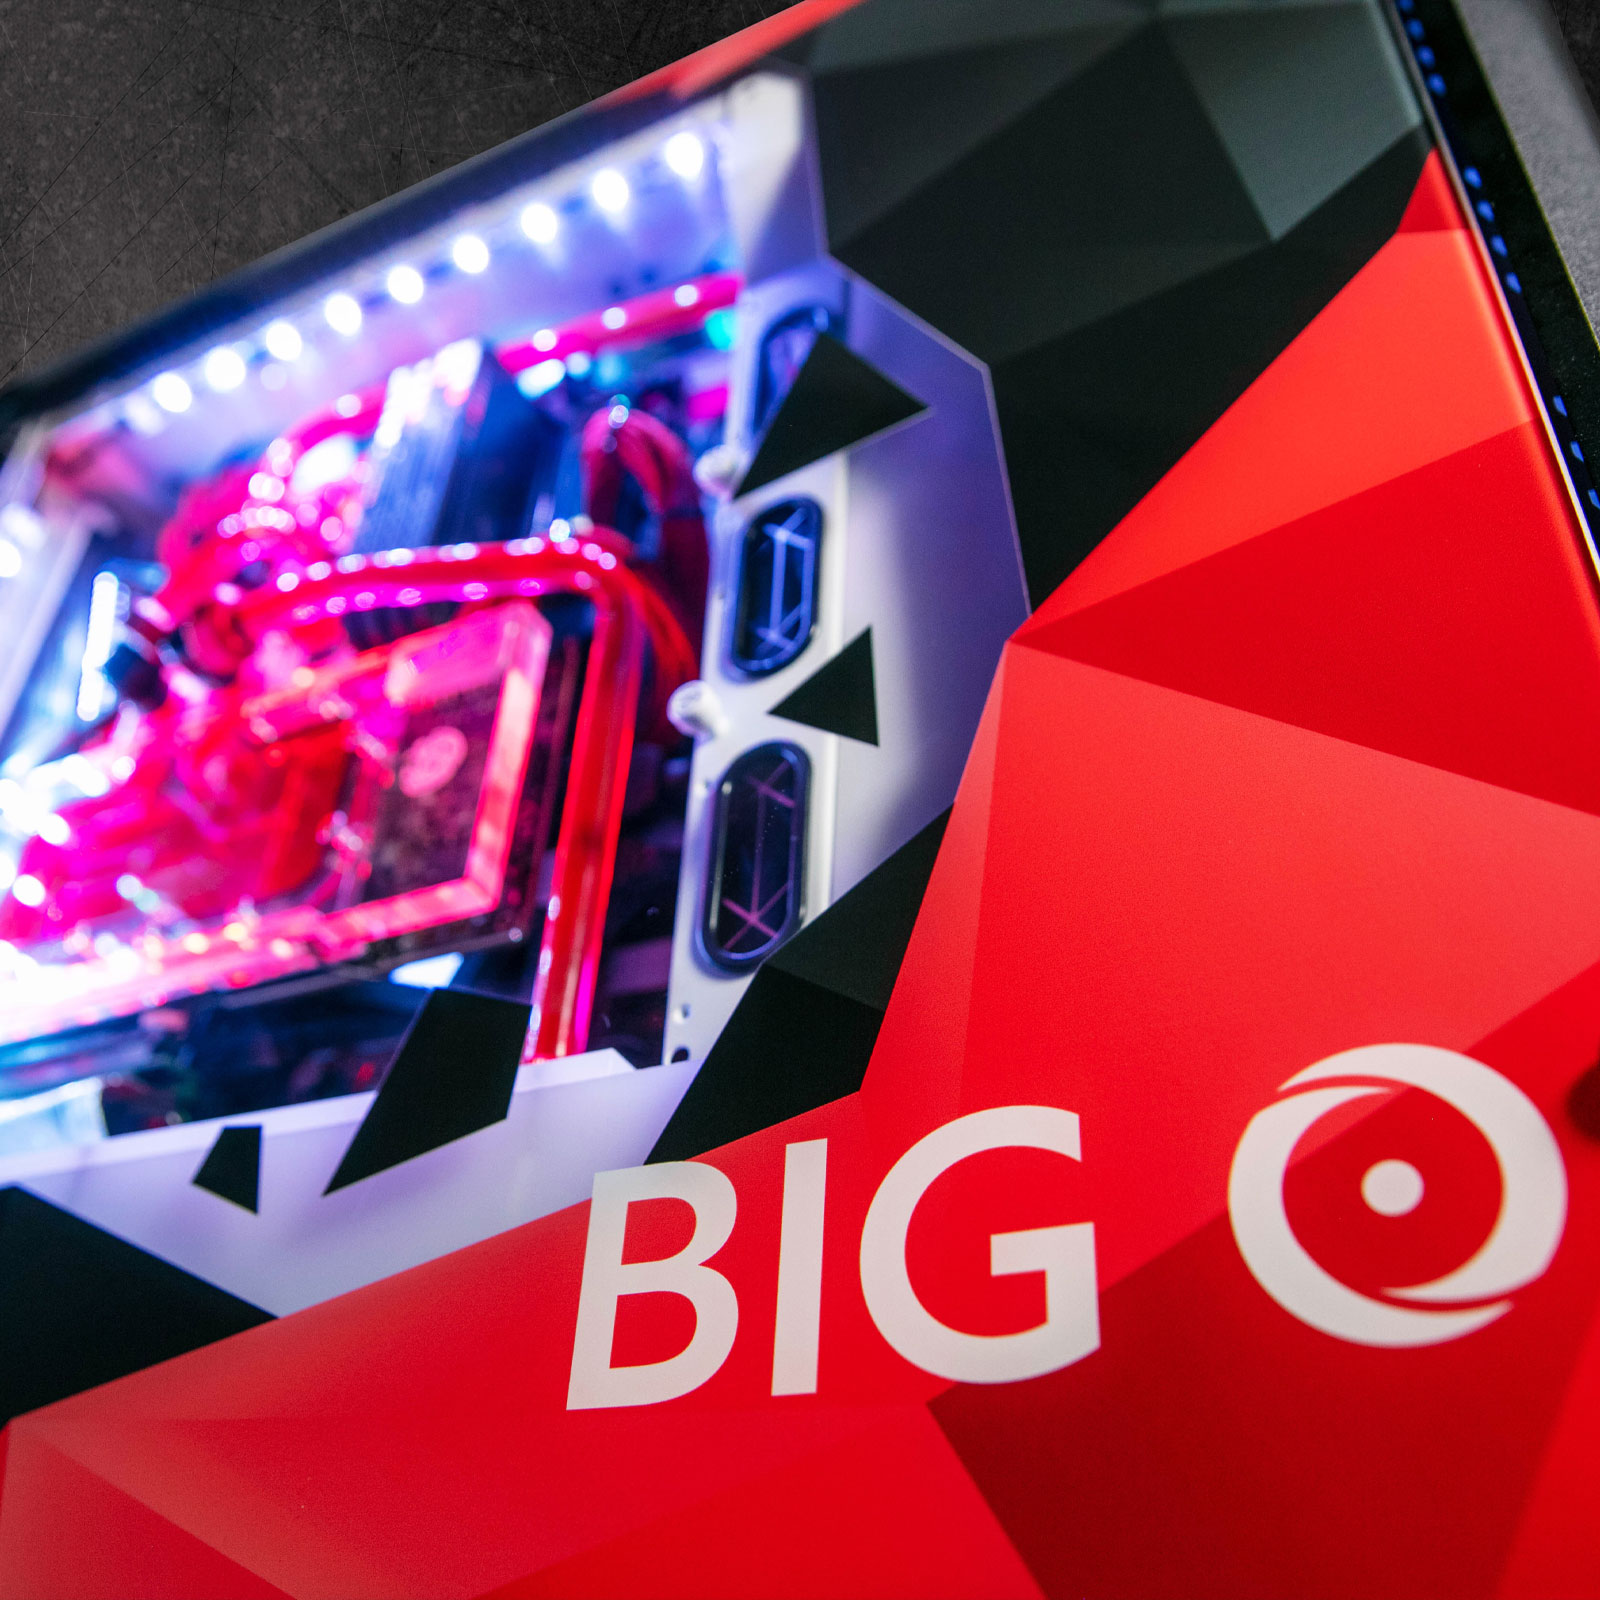 Big O by Origin PC Combines PS4 Pro, Xbox One X, and Nintendo Switch 3